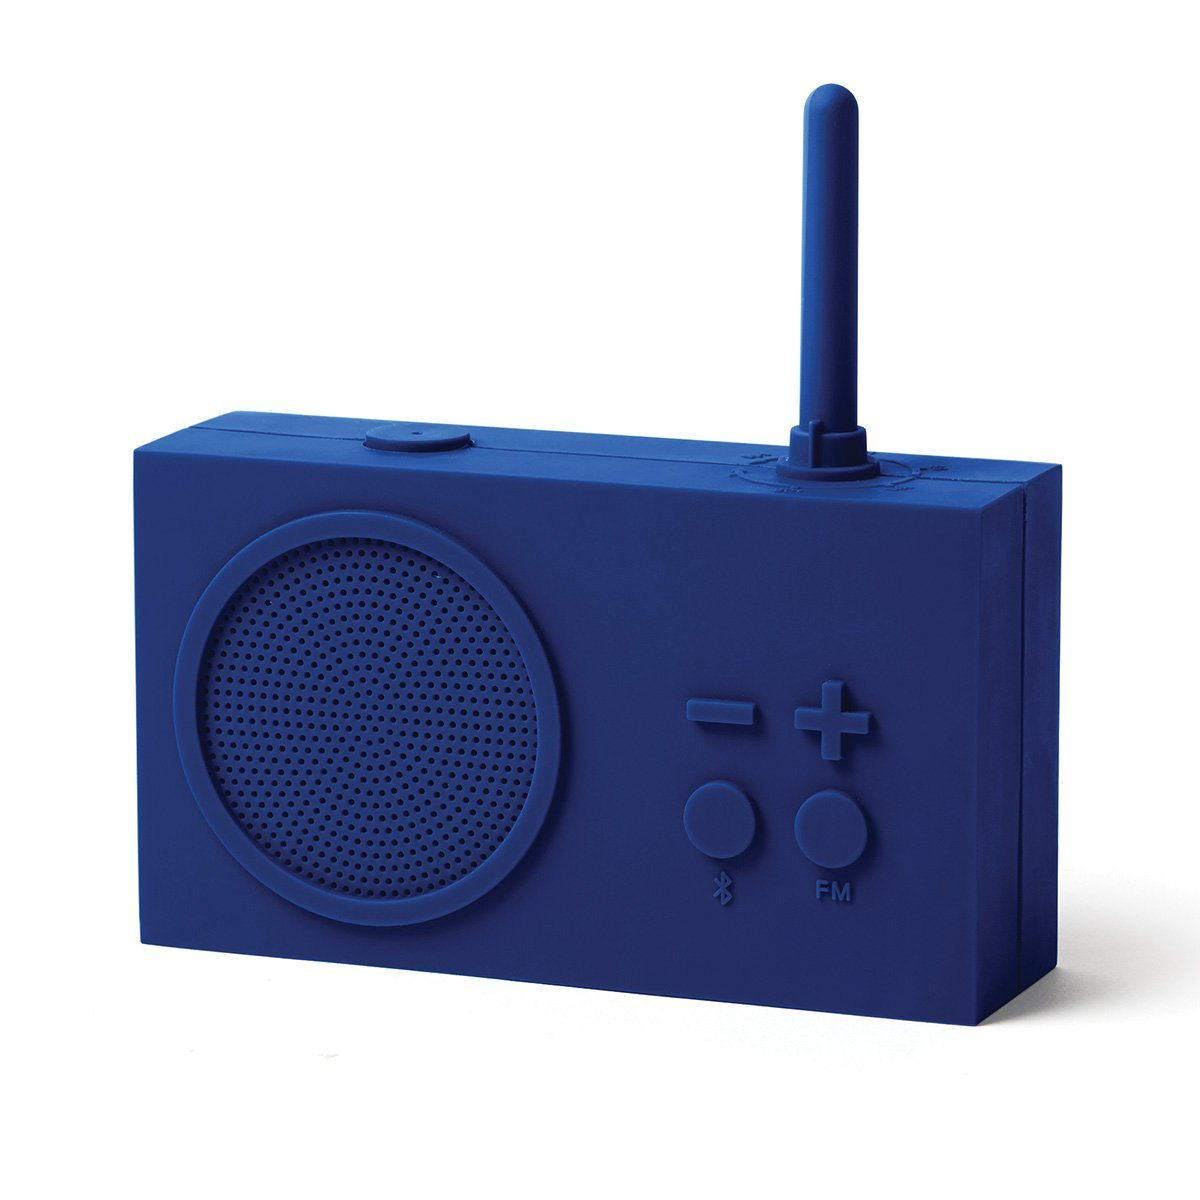 TYKHO 3 FM Radio + Bluetooth Speaker - Dark Blue